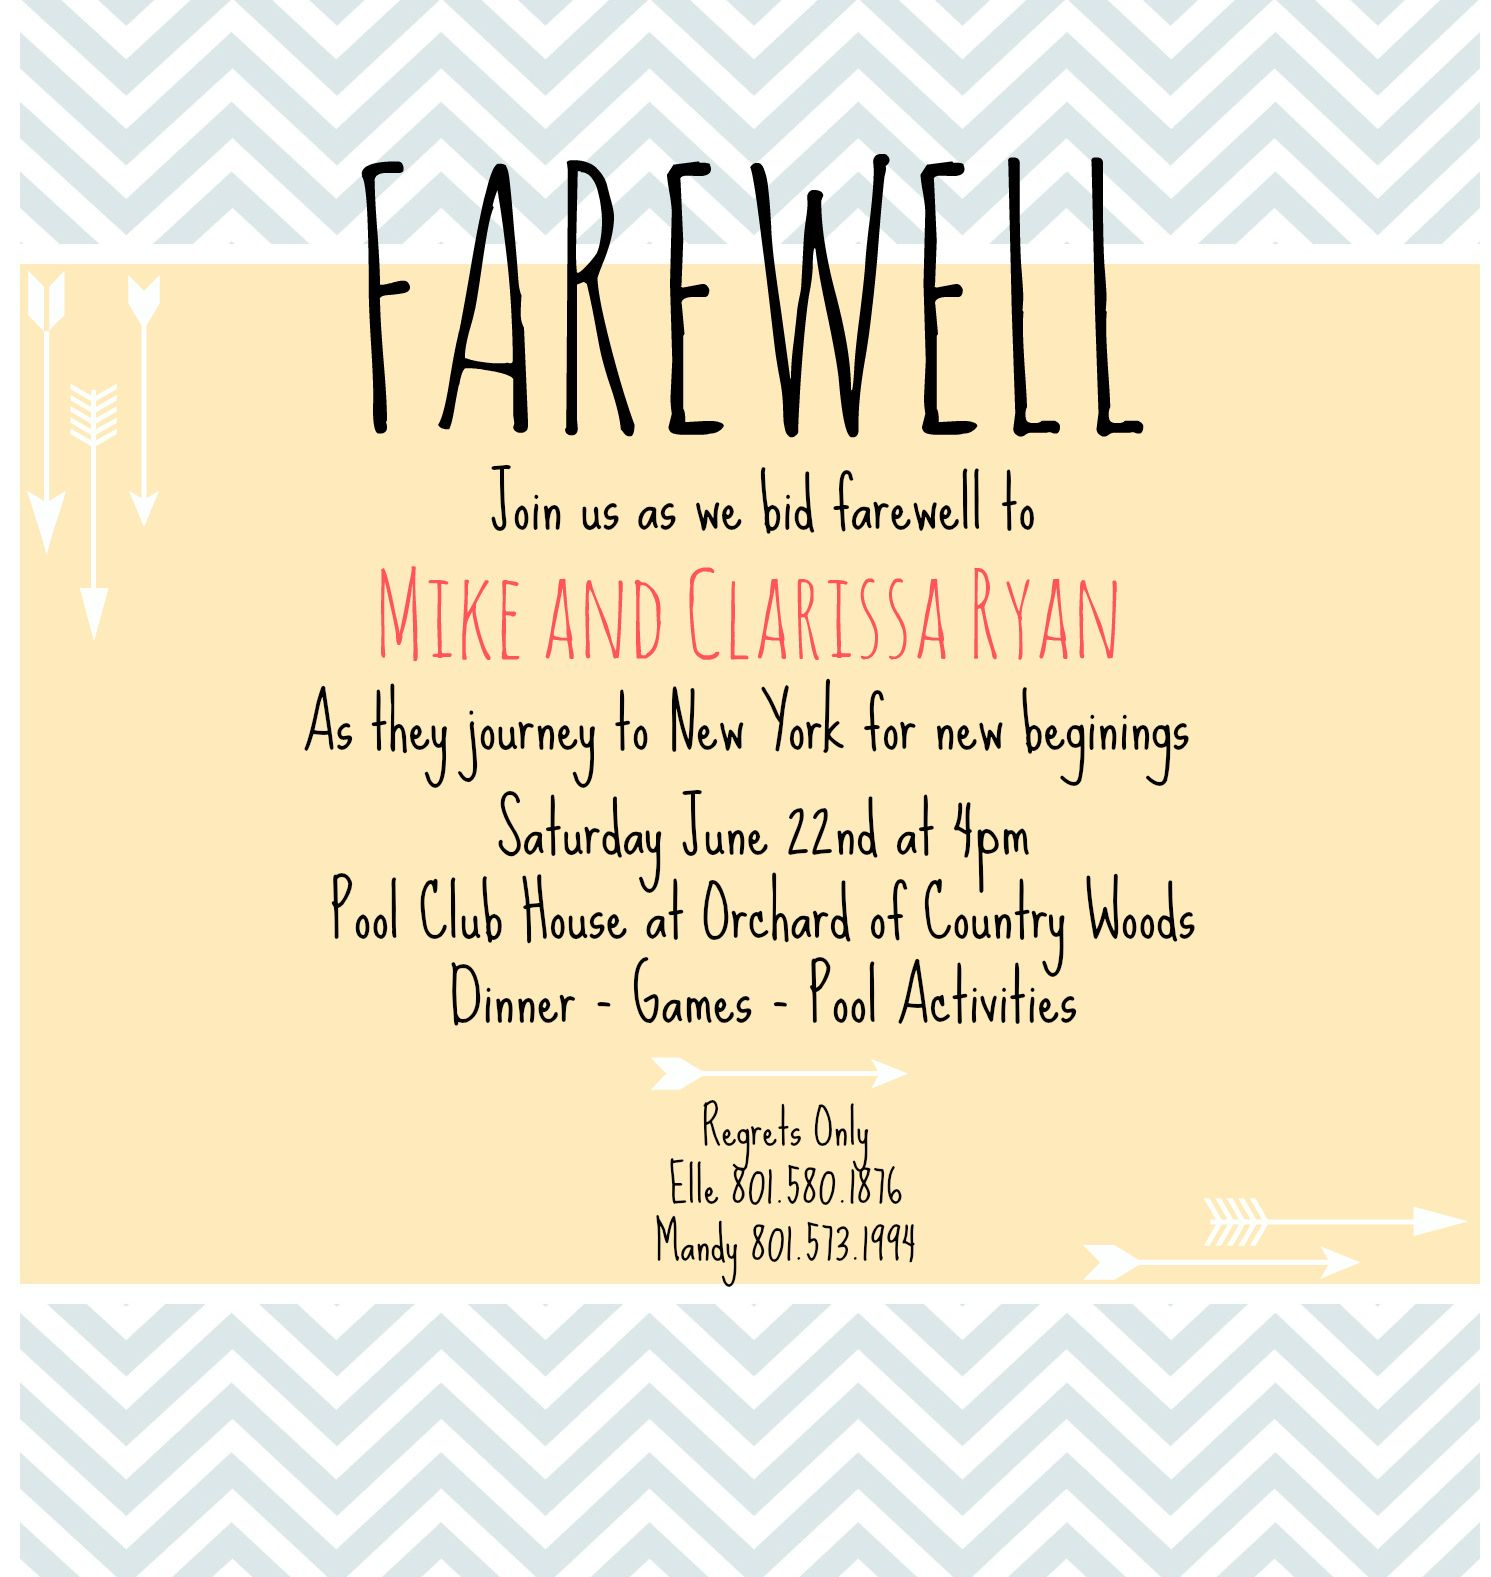 farewell invite | Picmonkey creations | Pinterest | Farewell parties ...